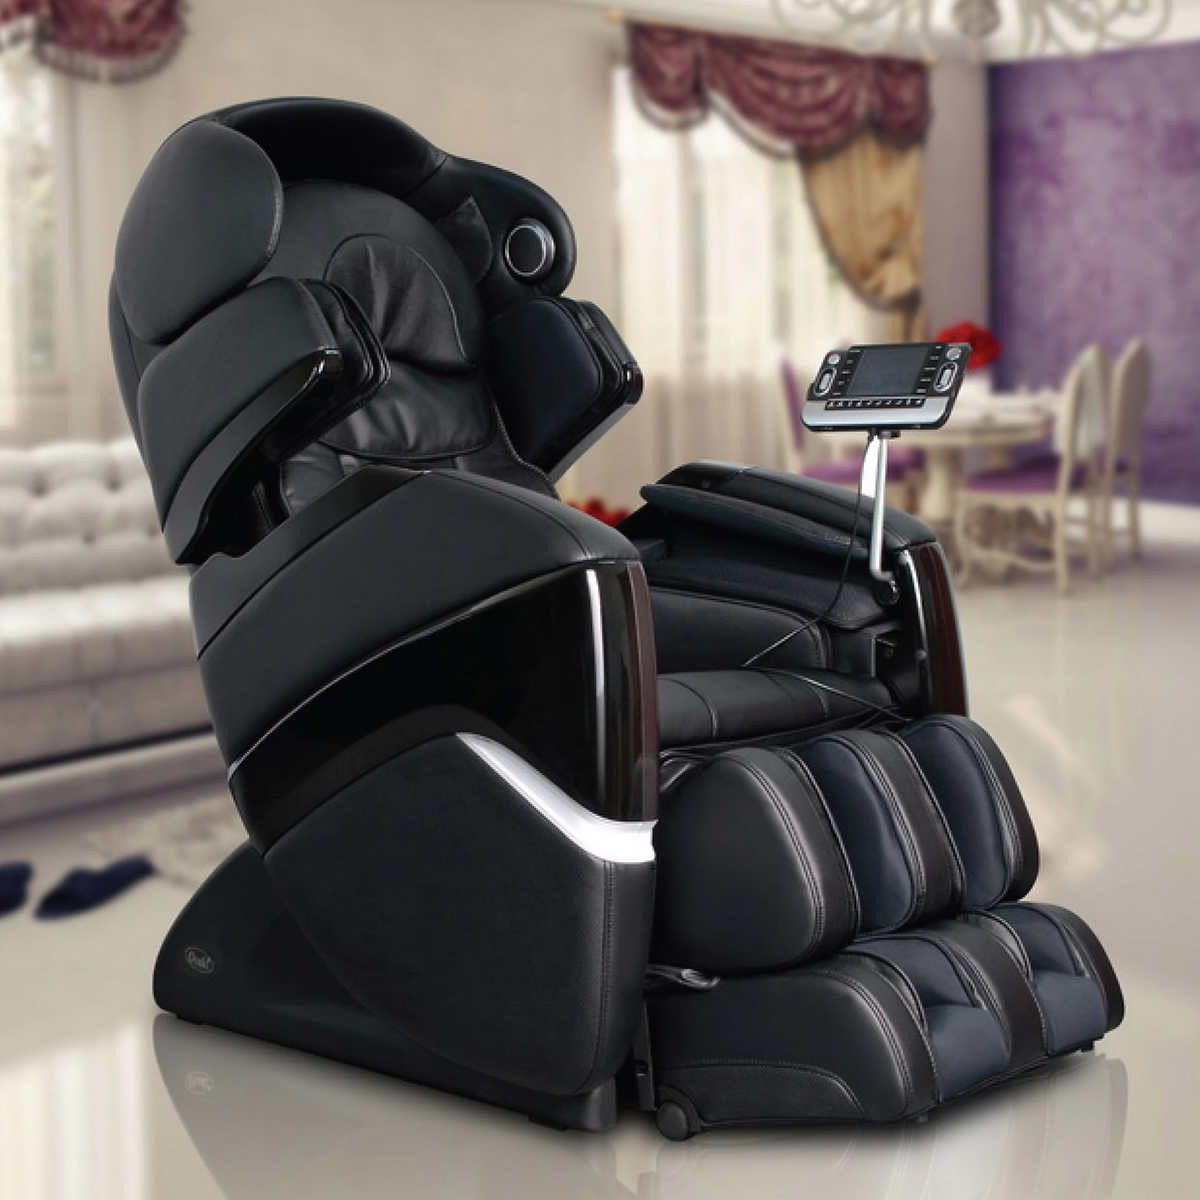 Back Massage Chairs For Sale Desk Chair Under 100 Pin By Neby On House Plans Ideas Pinterest Osaki Pro Cyber Technologycomputer Body Stage Zero Gravitylower Heat Connection Full Size Easy To Use Remote